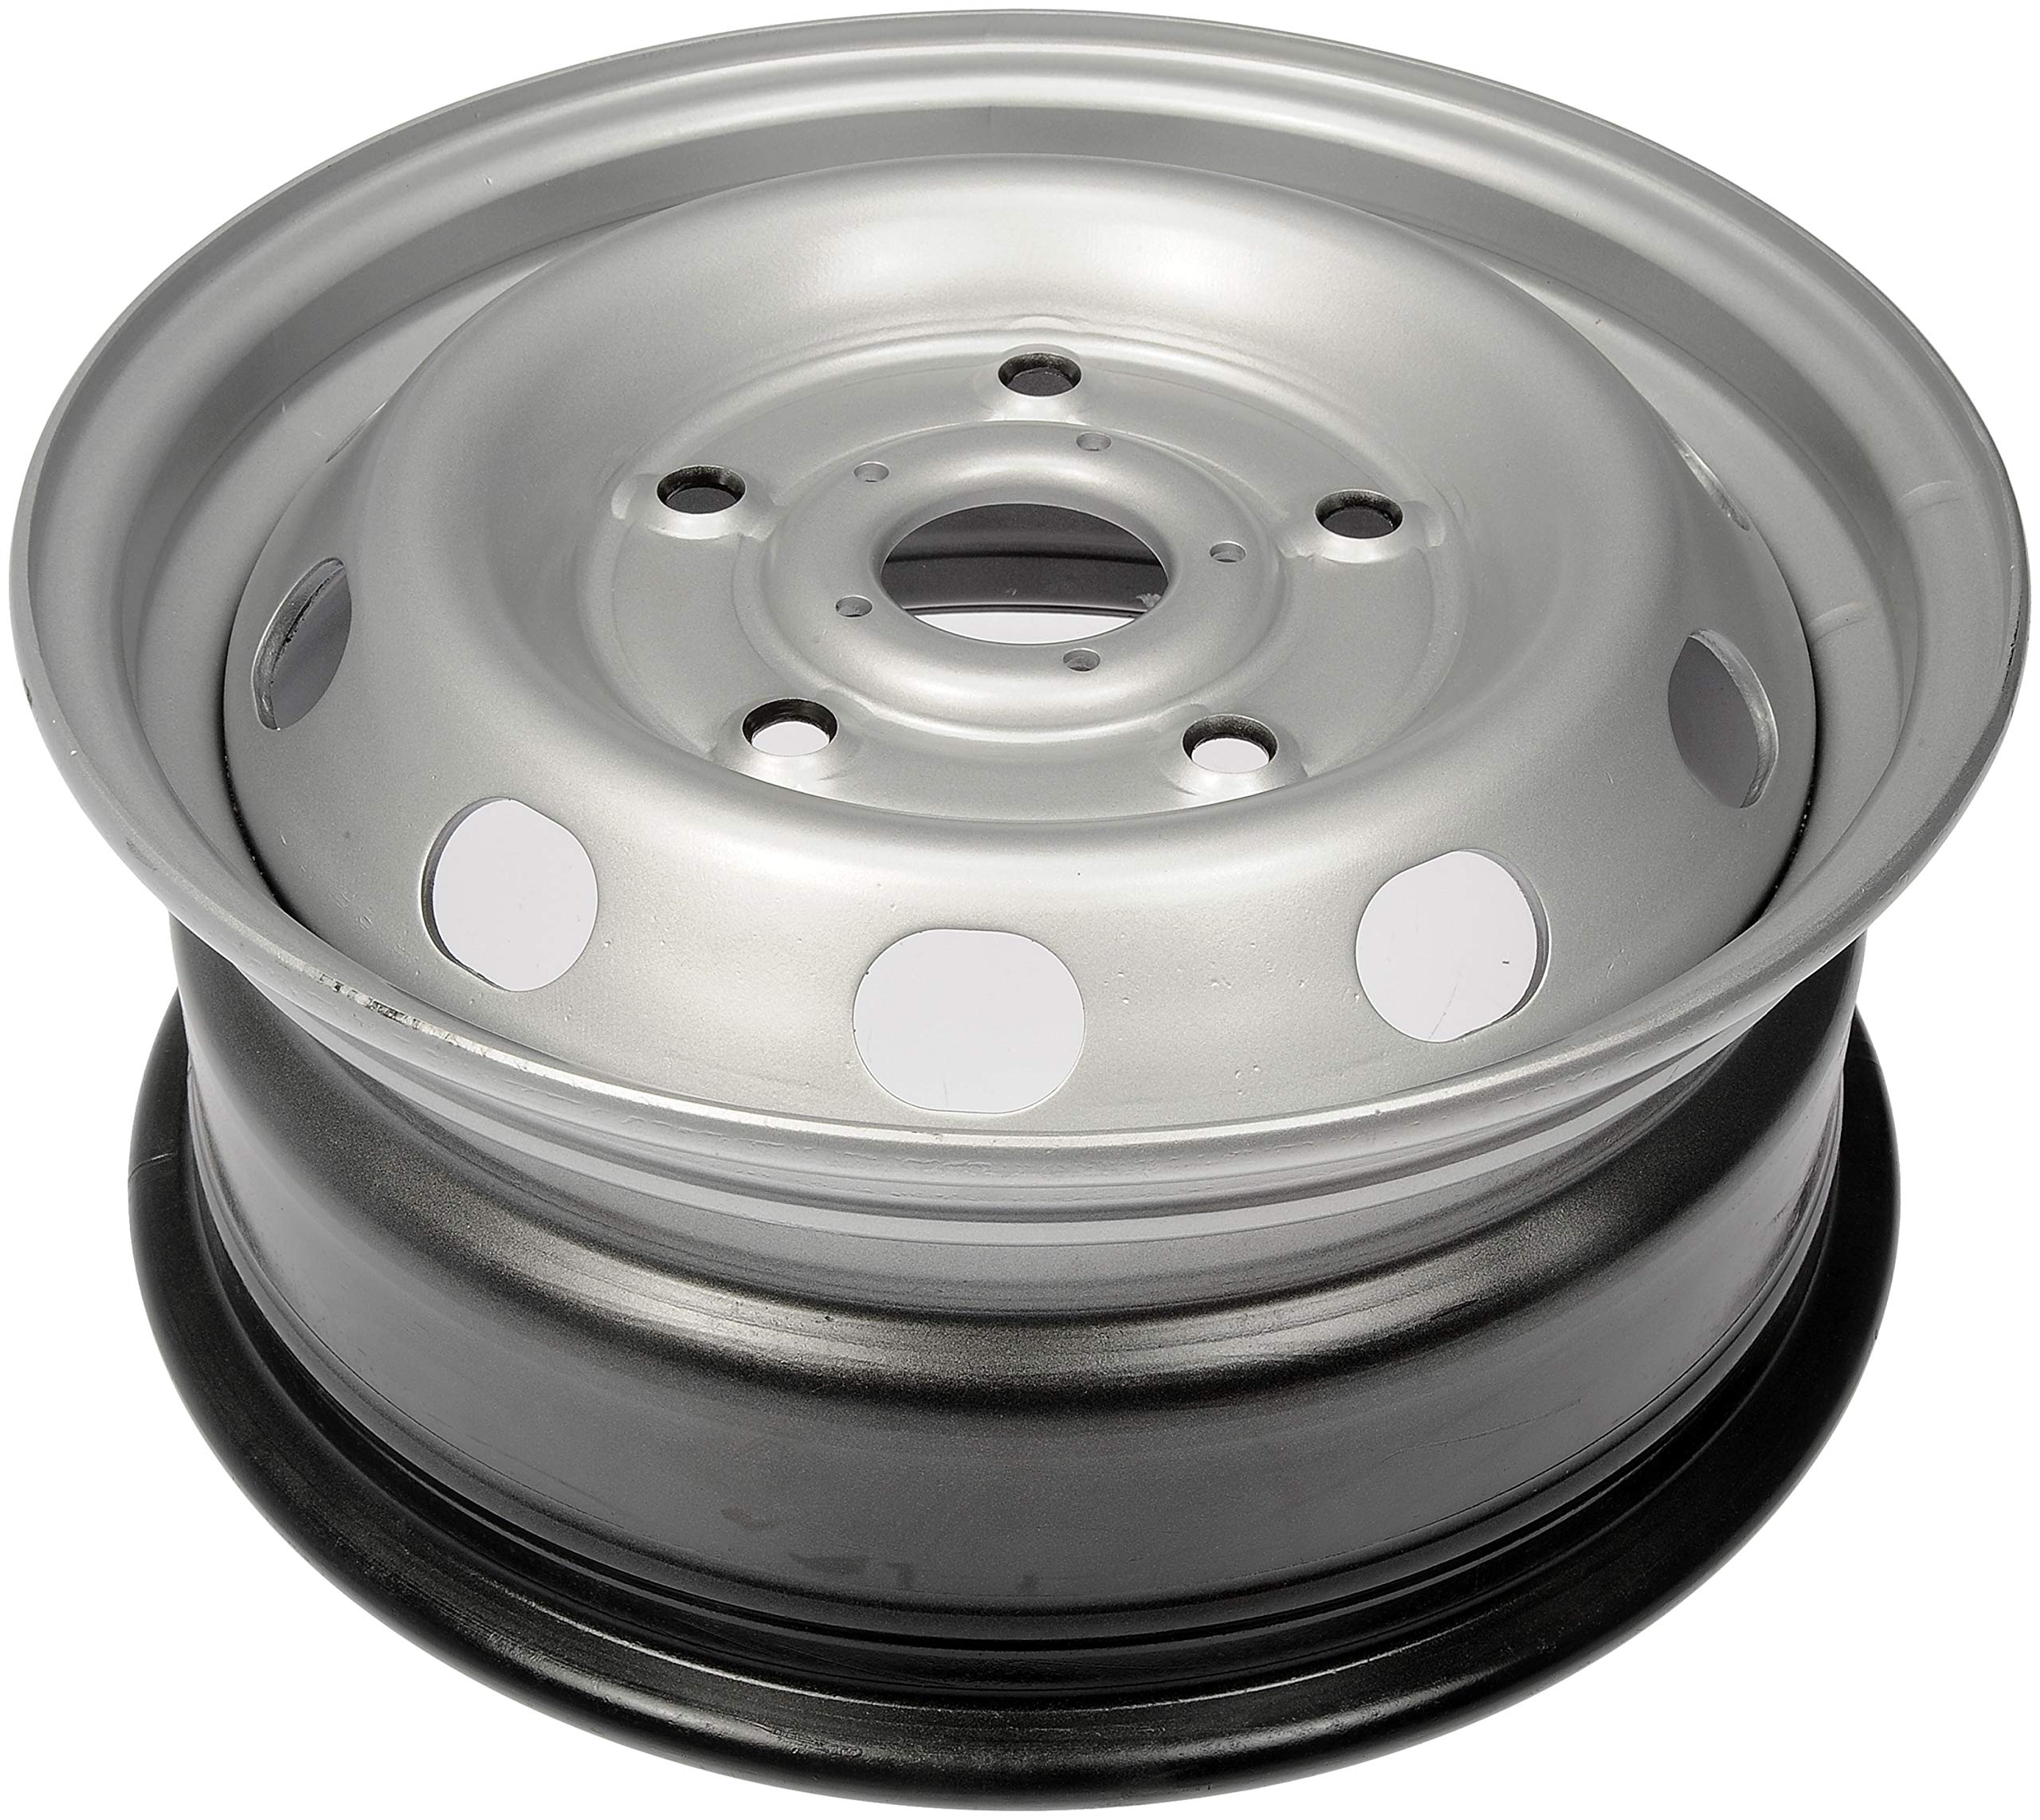 Dorman 939-302 Steel Wheel for Select Ford Models (16×6.5 in / 5x160mm)